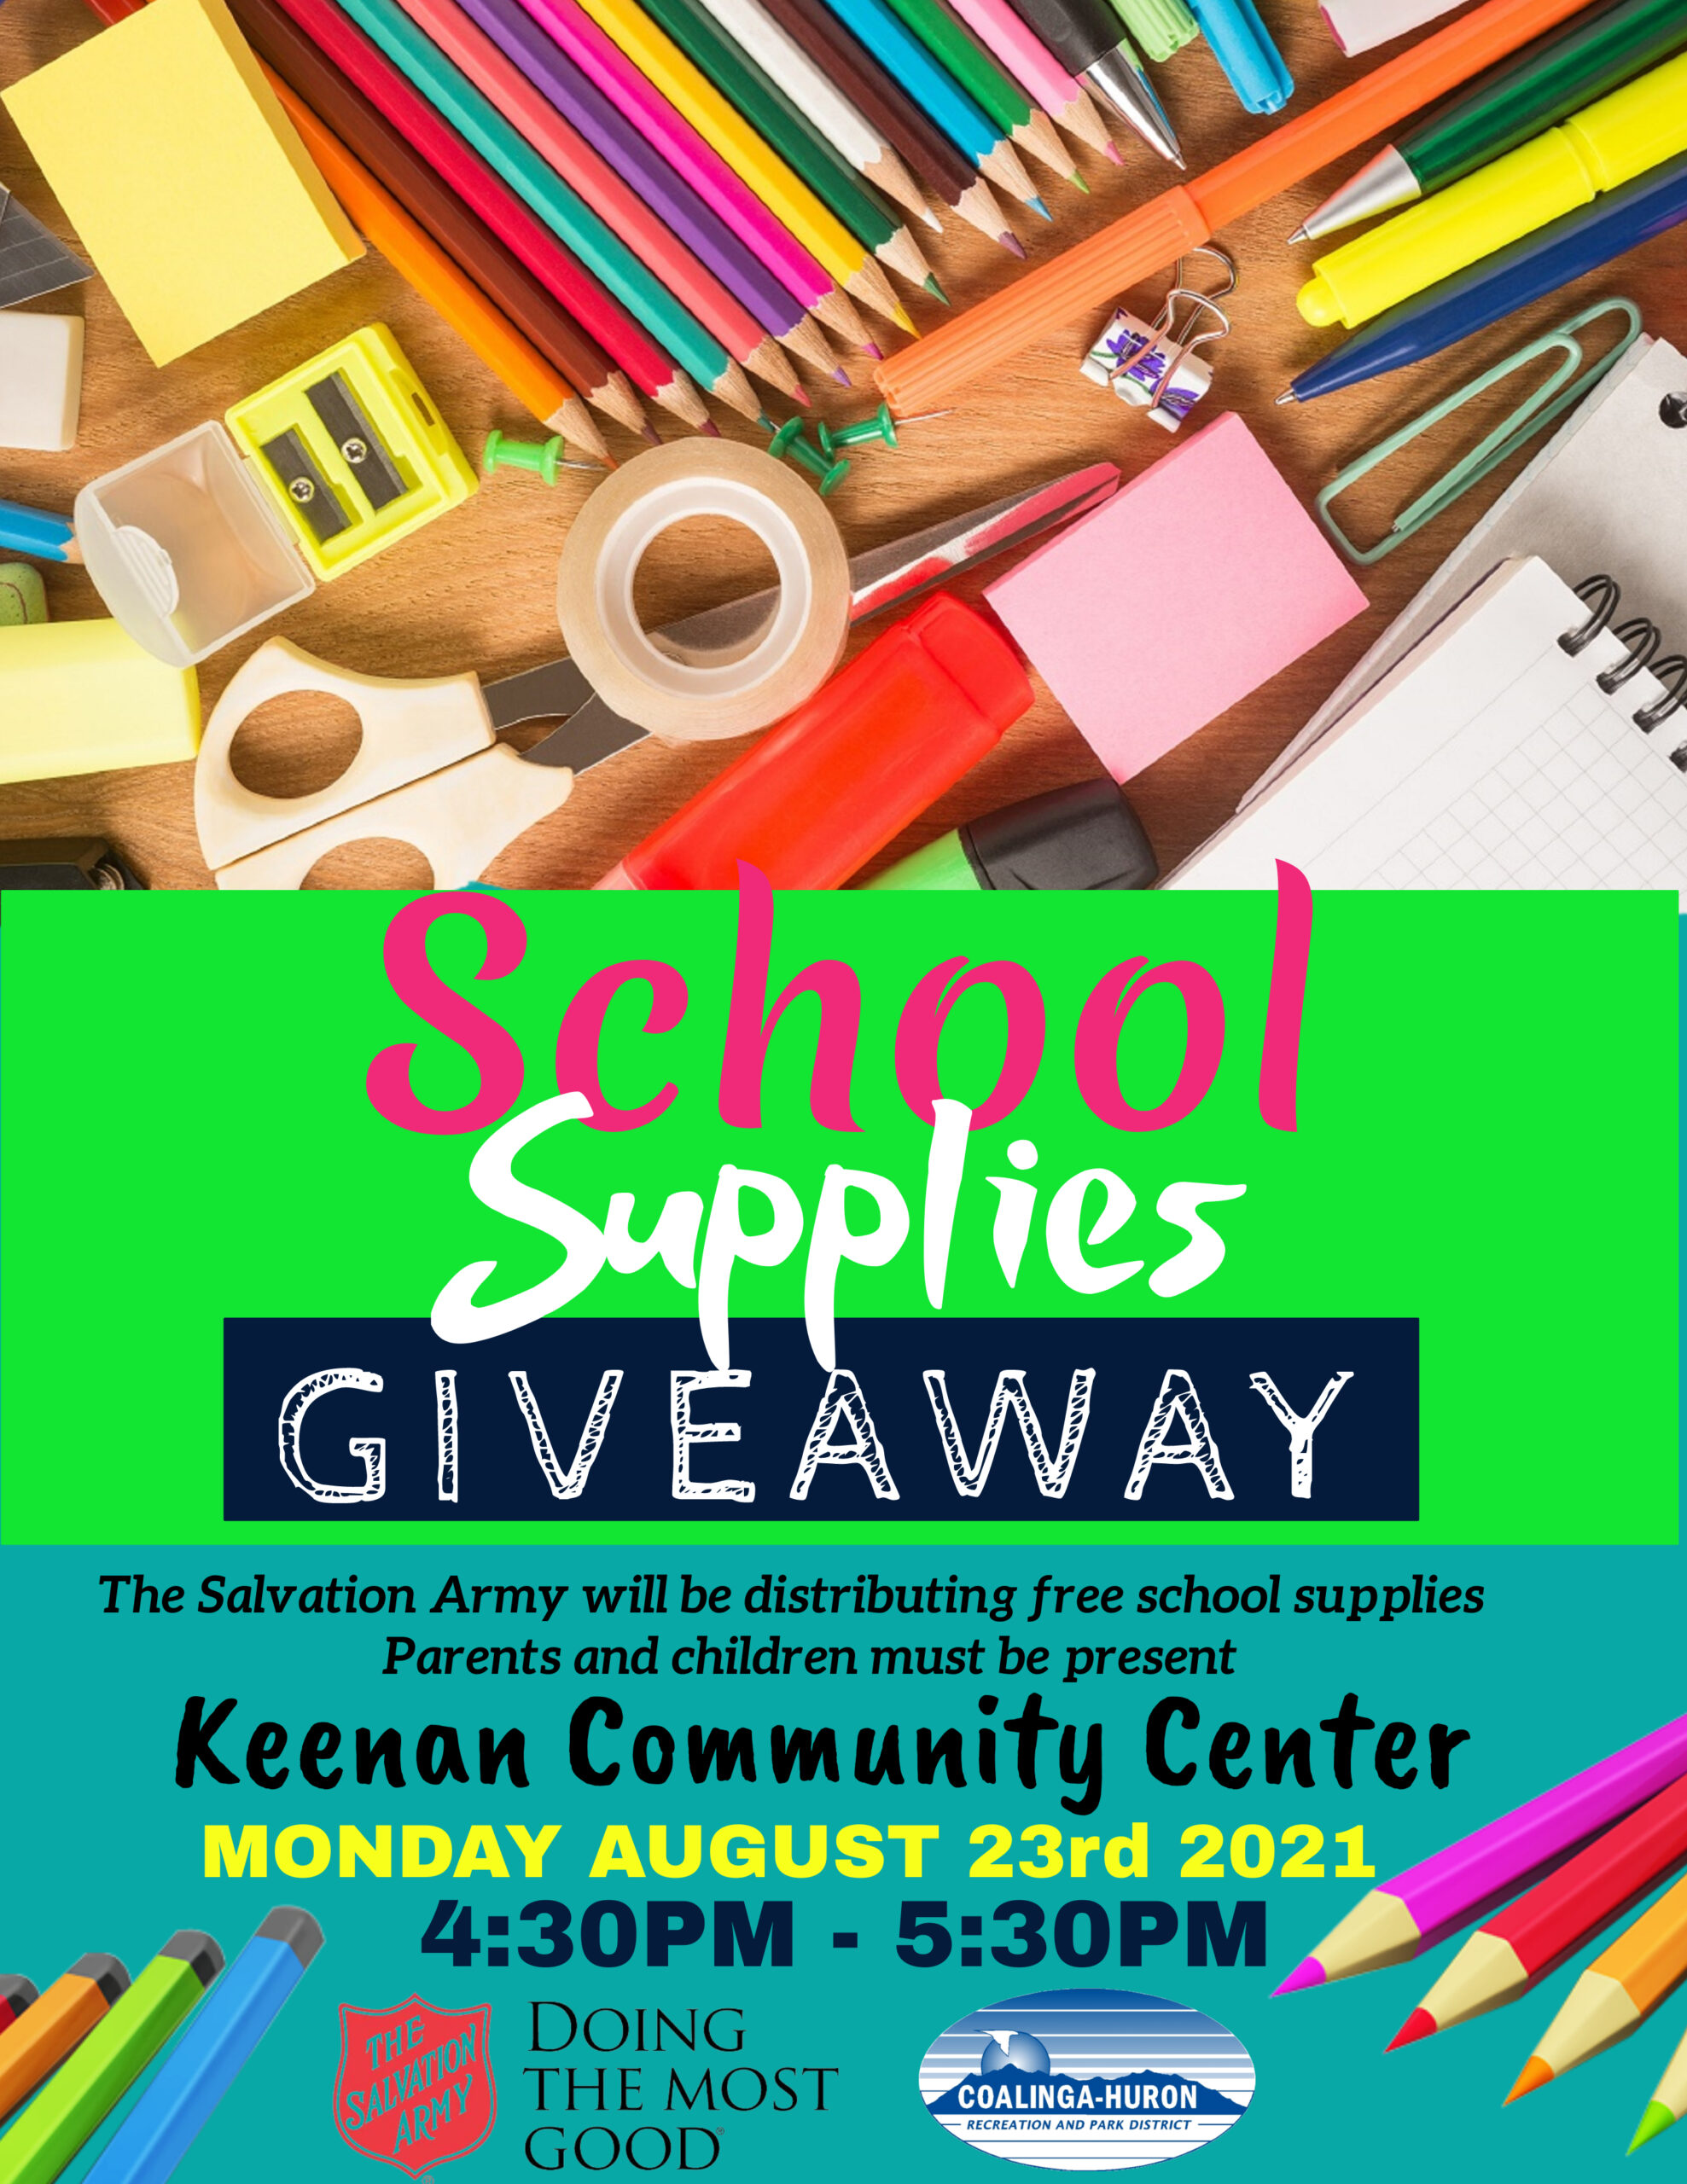 SALVATION ARMY SCHOOL SUPPLIES GIVEAWAY